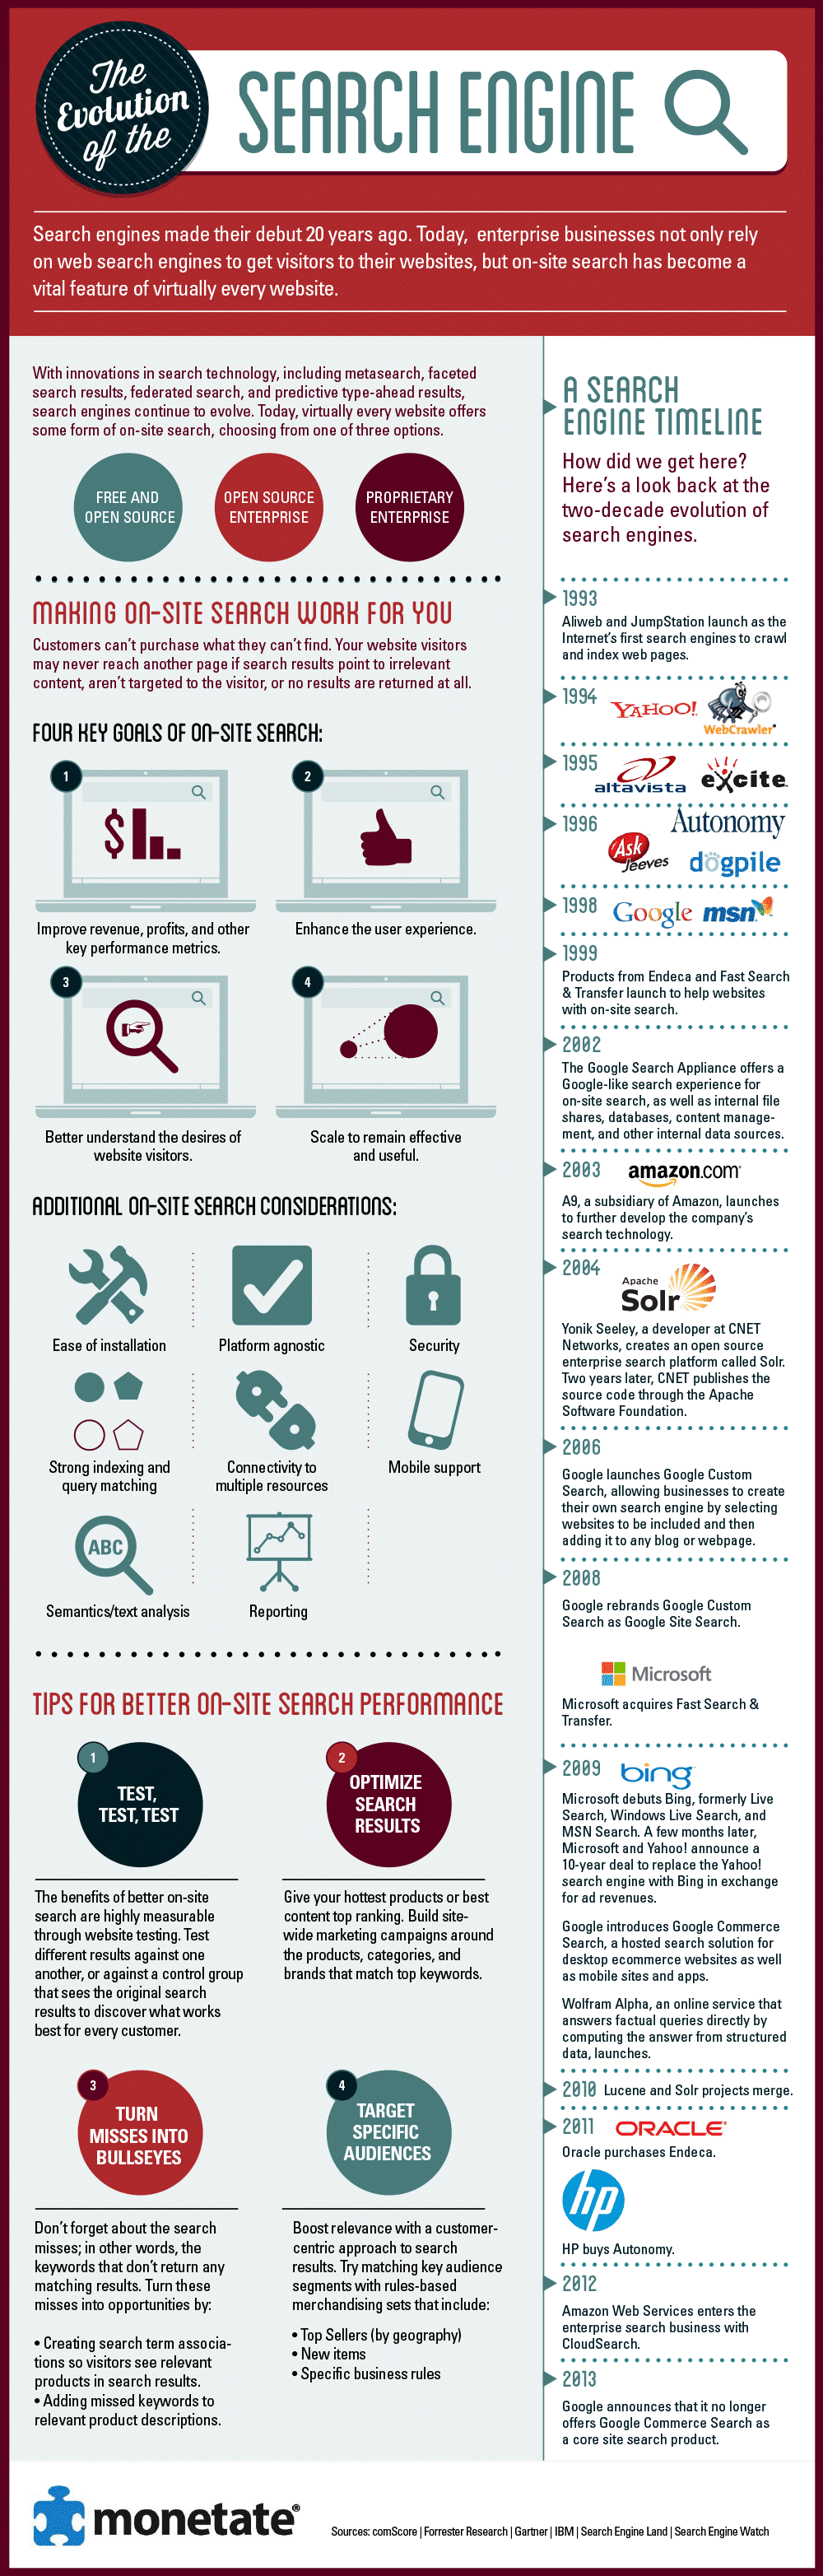 search-engine-evolution-timeline-infographic